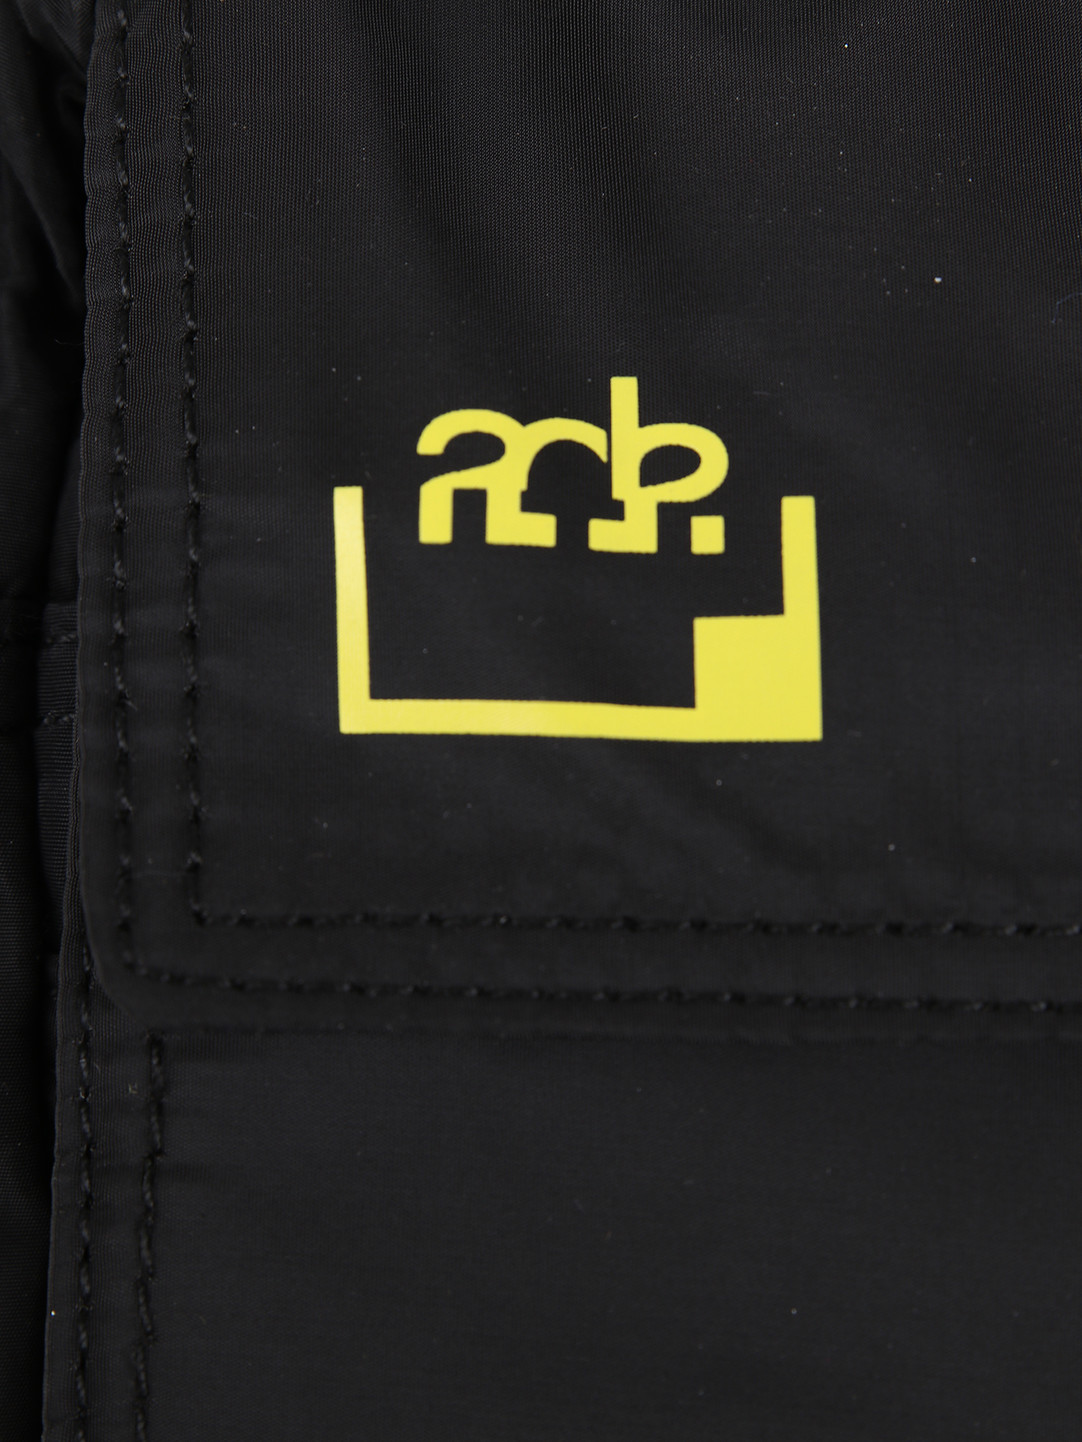 FRESHCOTTON x ADE FRESHCOTTON x ADE Passport Bag Black